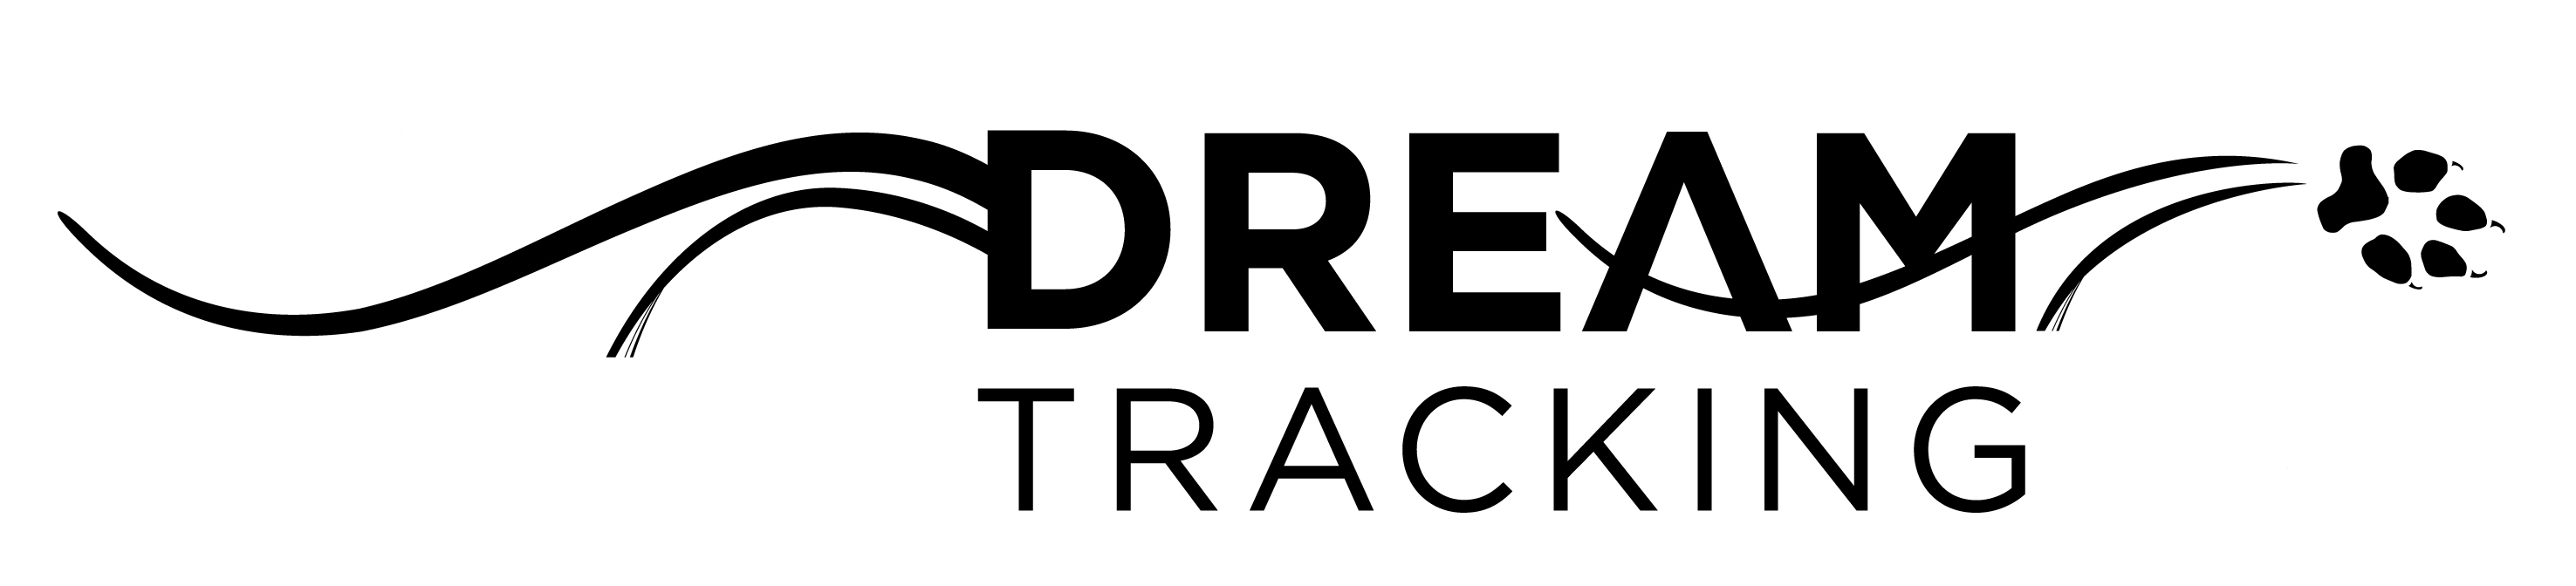 Dream Tracking